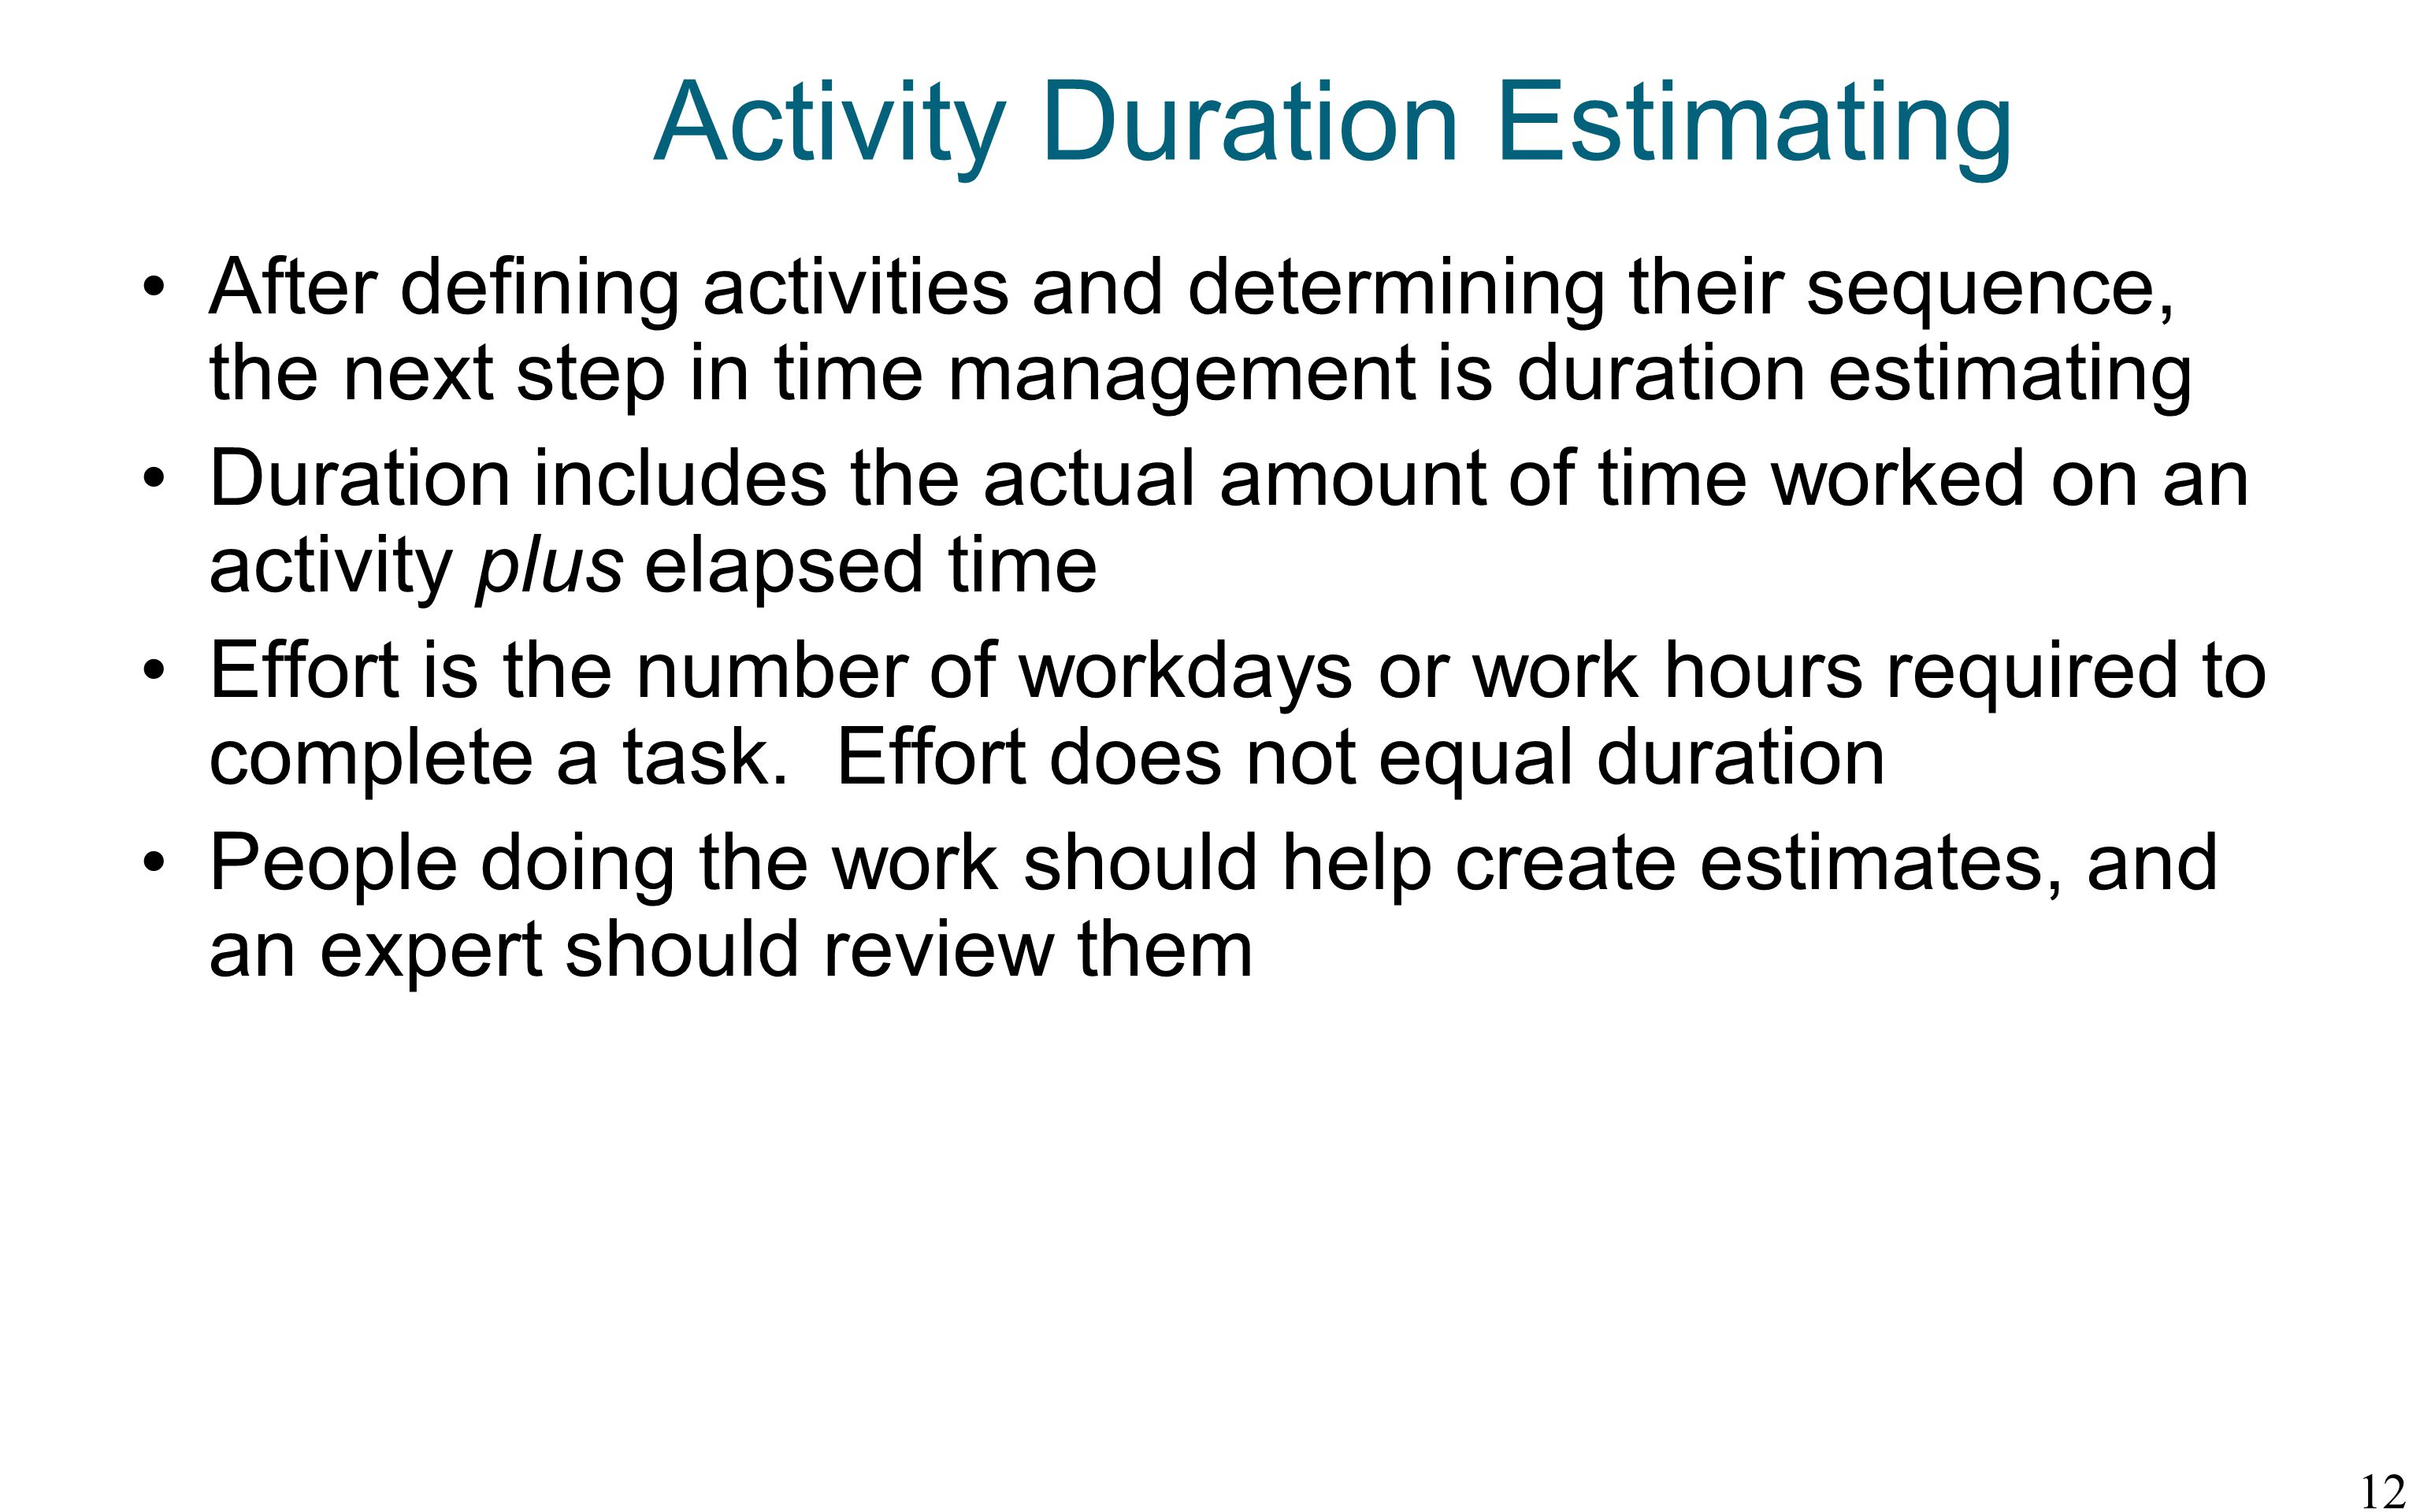 techniques for estimating task duration in Description and definition of the pmi-process 'activity duration estimating' description and definition of the pmi-process 'activity duration estimating' skip to the navigation (343) tools and techniques pmbok mentioned methods.